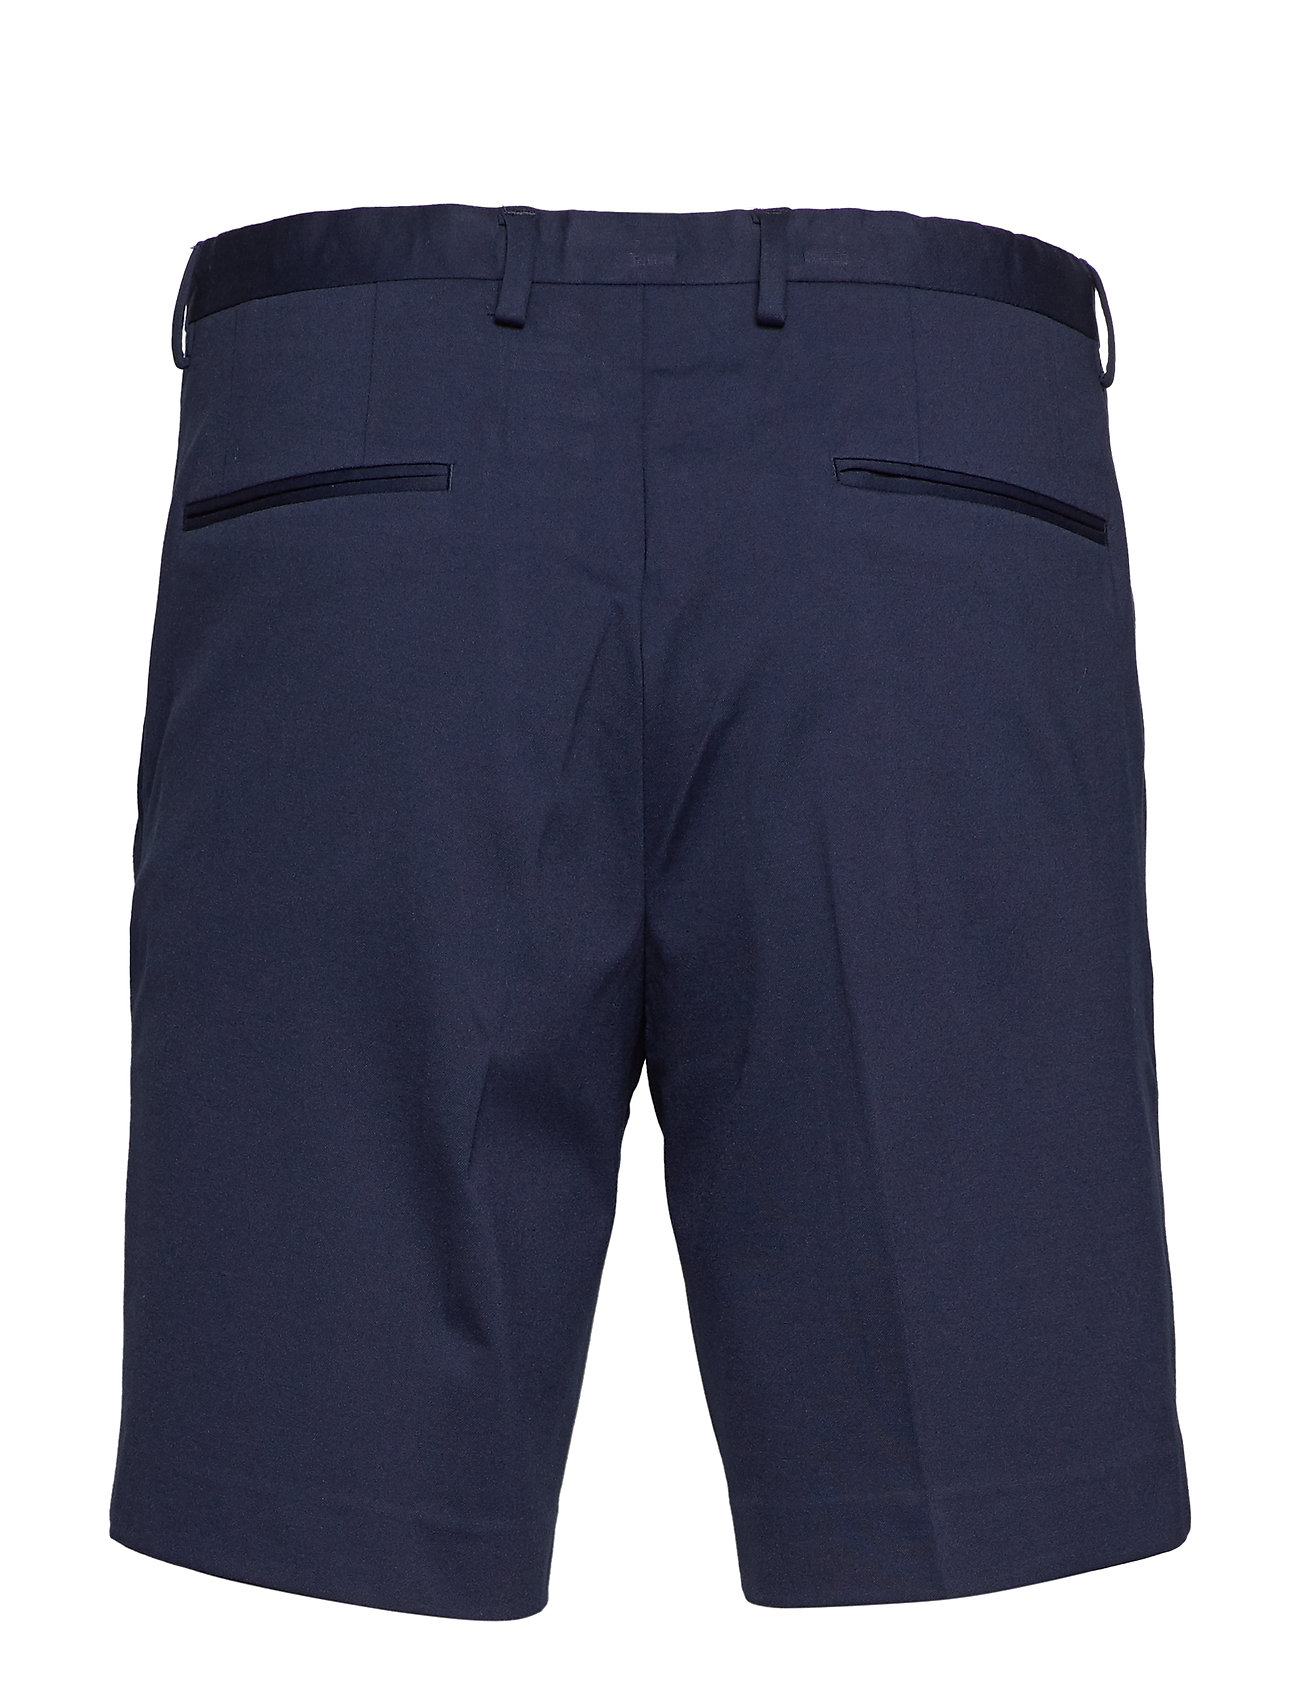 Selected Homme - SLHTAPERED-AIR SHORTS B - casual shorts - dark sapphire - 1